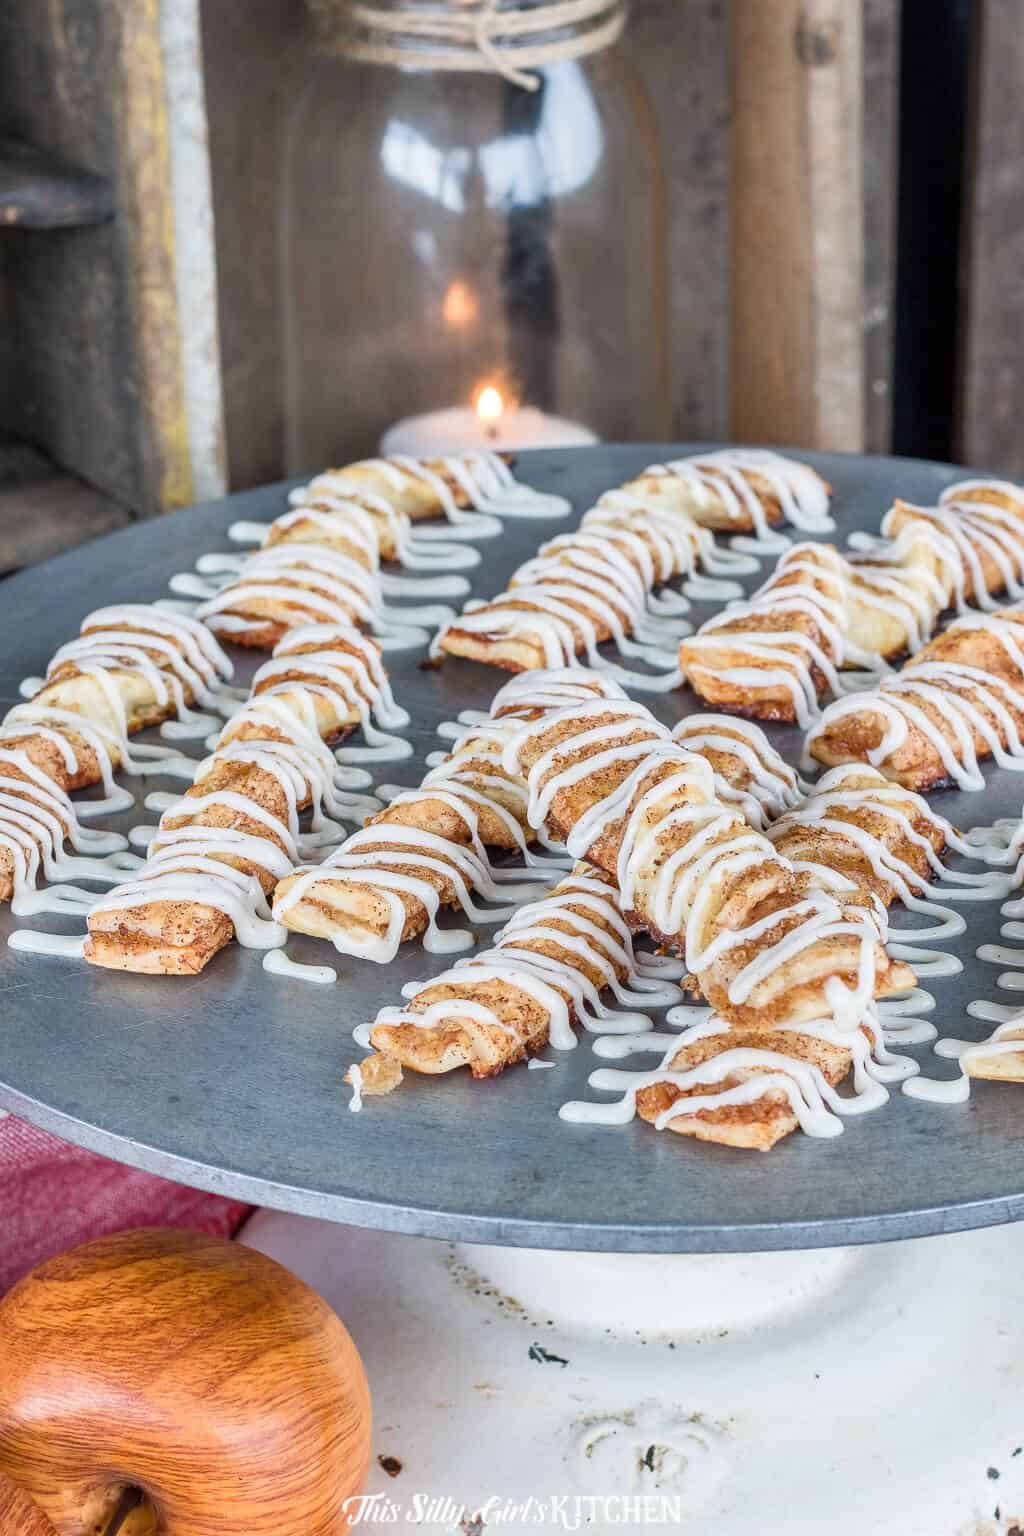 Apple Cinnamon Twists, apple pie turned into a breakfast treat, dripping with vanilla bean glaze! #recipe from ThisSillyGirlsKitchen.com #apple #cinnamon #cinnamontwists #applecinnamon #piecrust